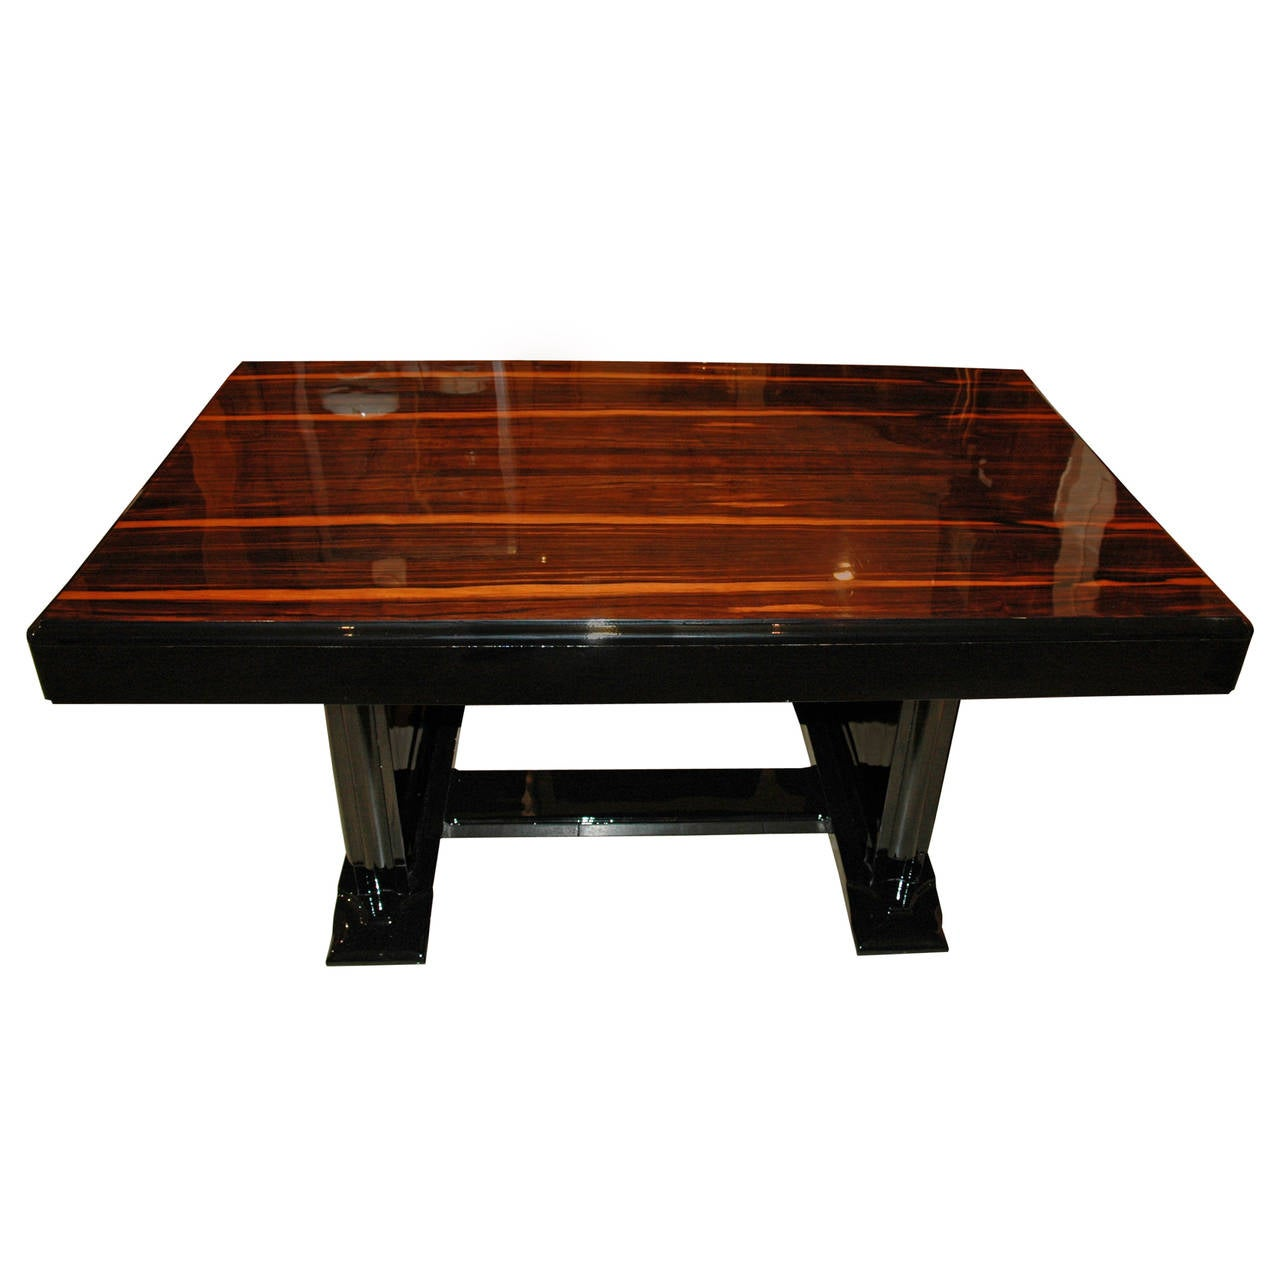 Art Deco Dining Table With Palisander Table Top 1